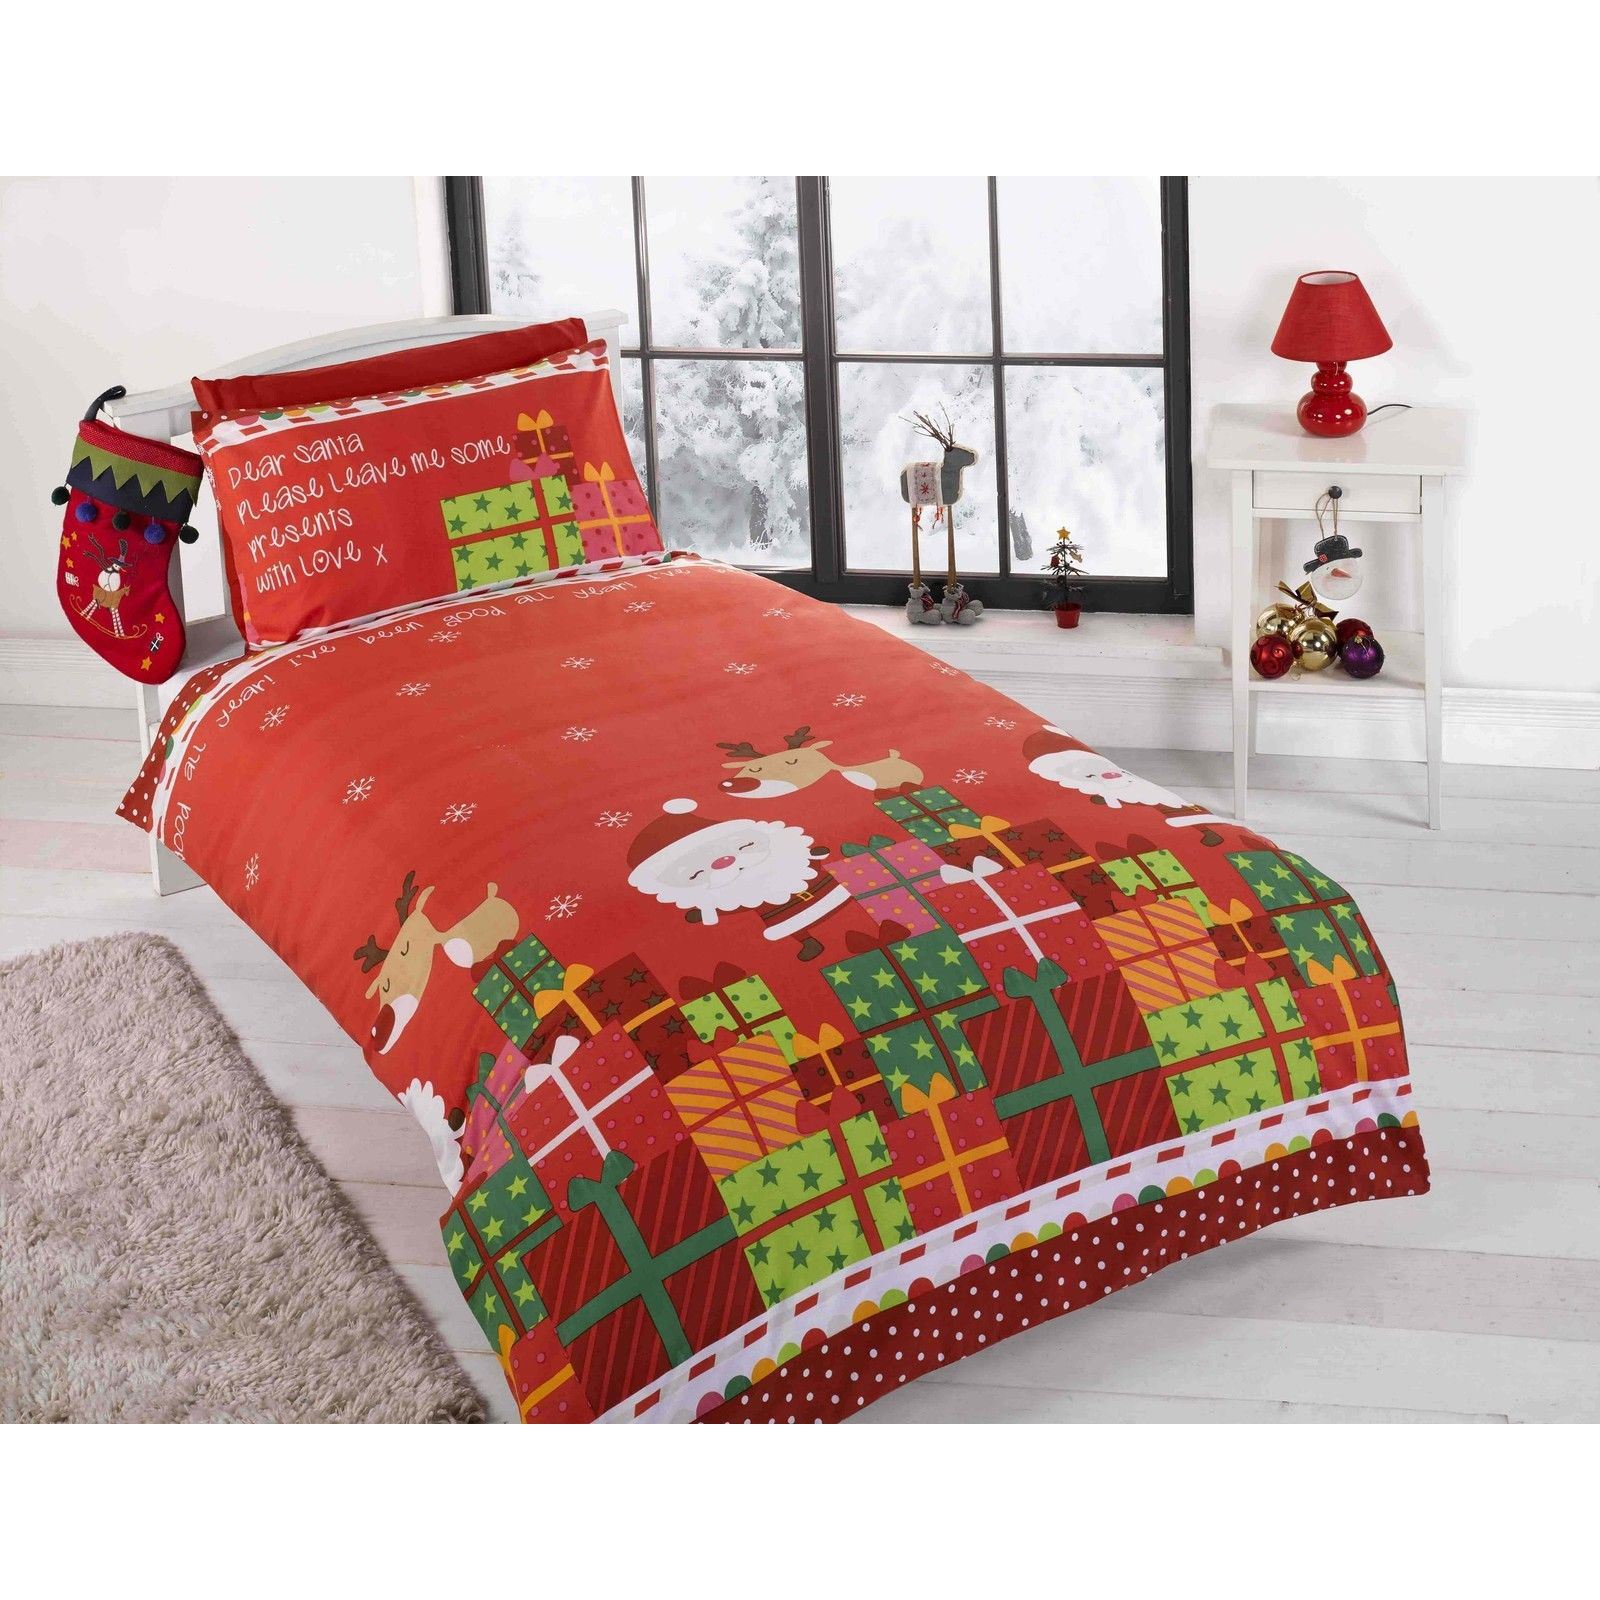 Details About Dear Santa Christmas Xmas Duvet Cover Set Red Junior 4 In 1 Single Double